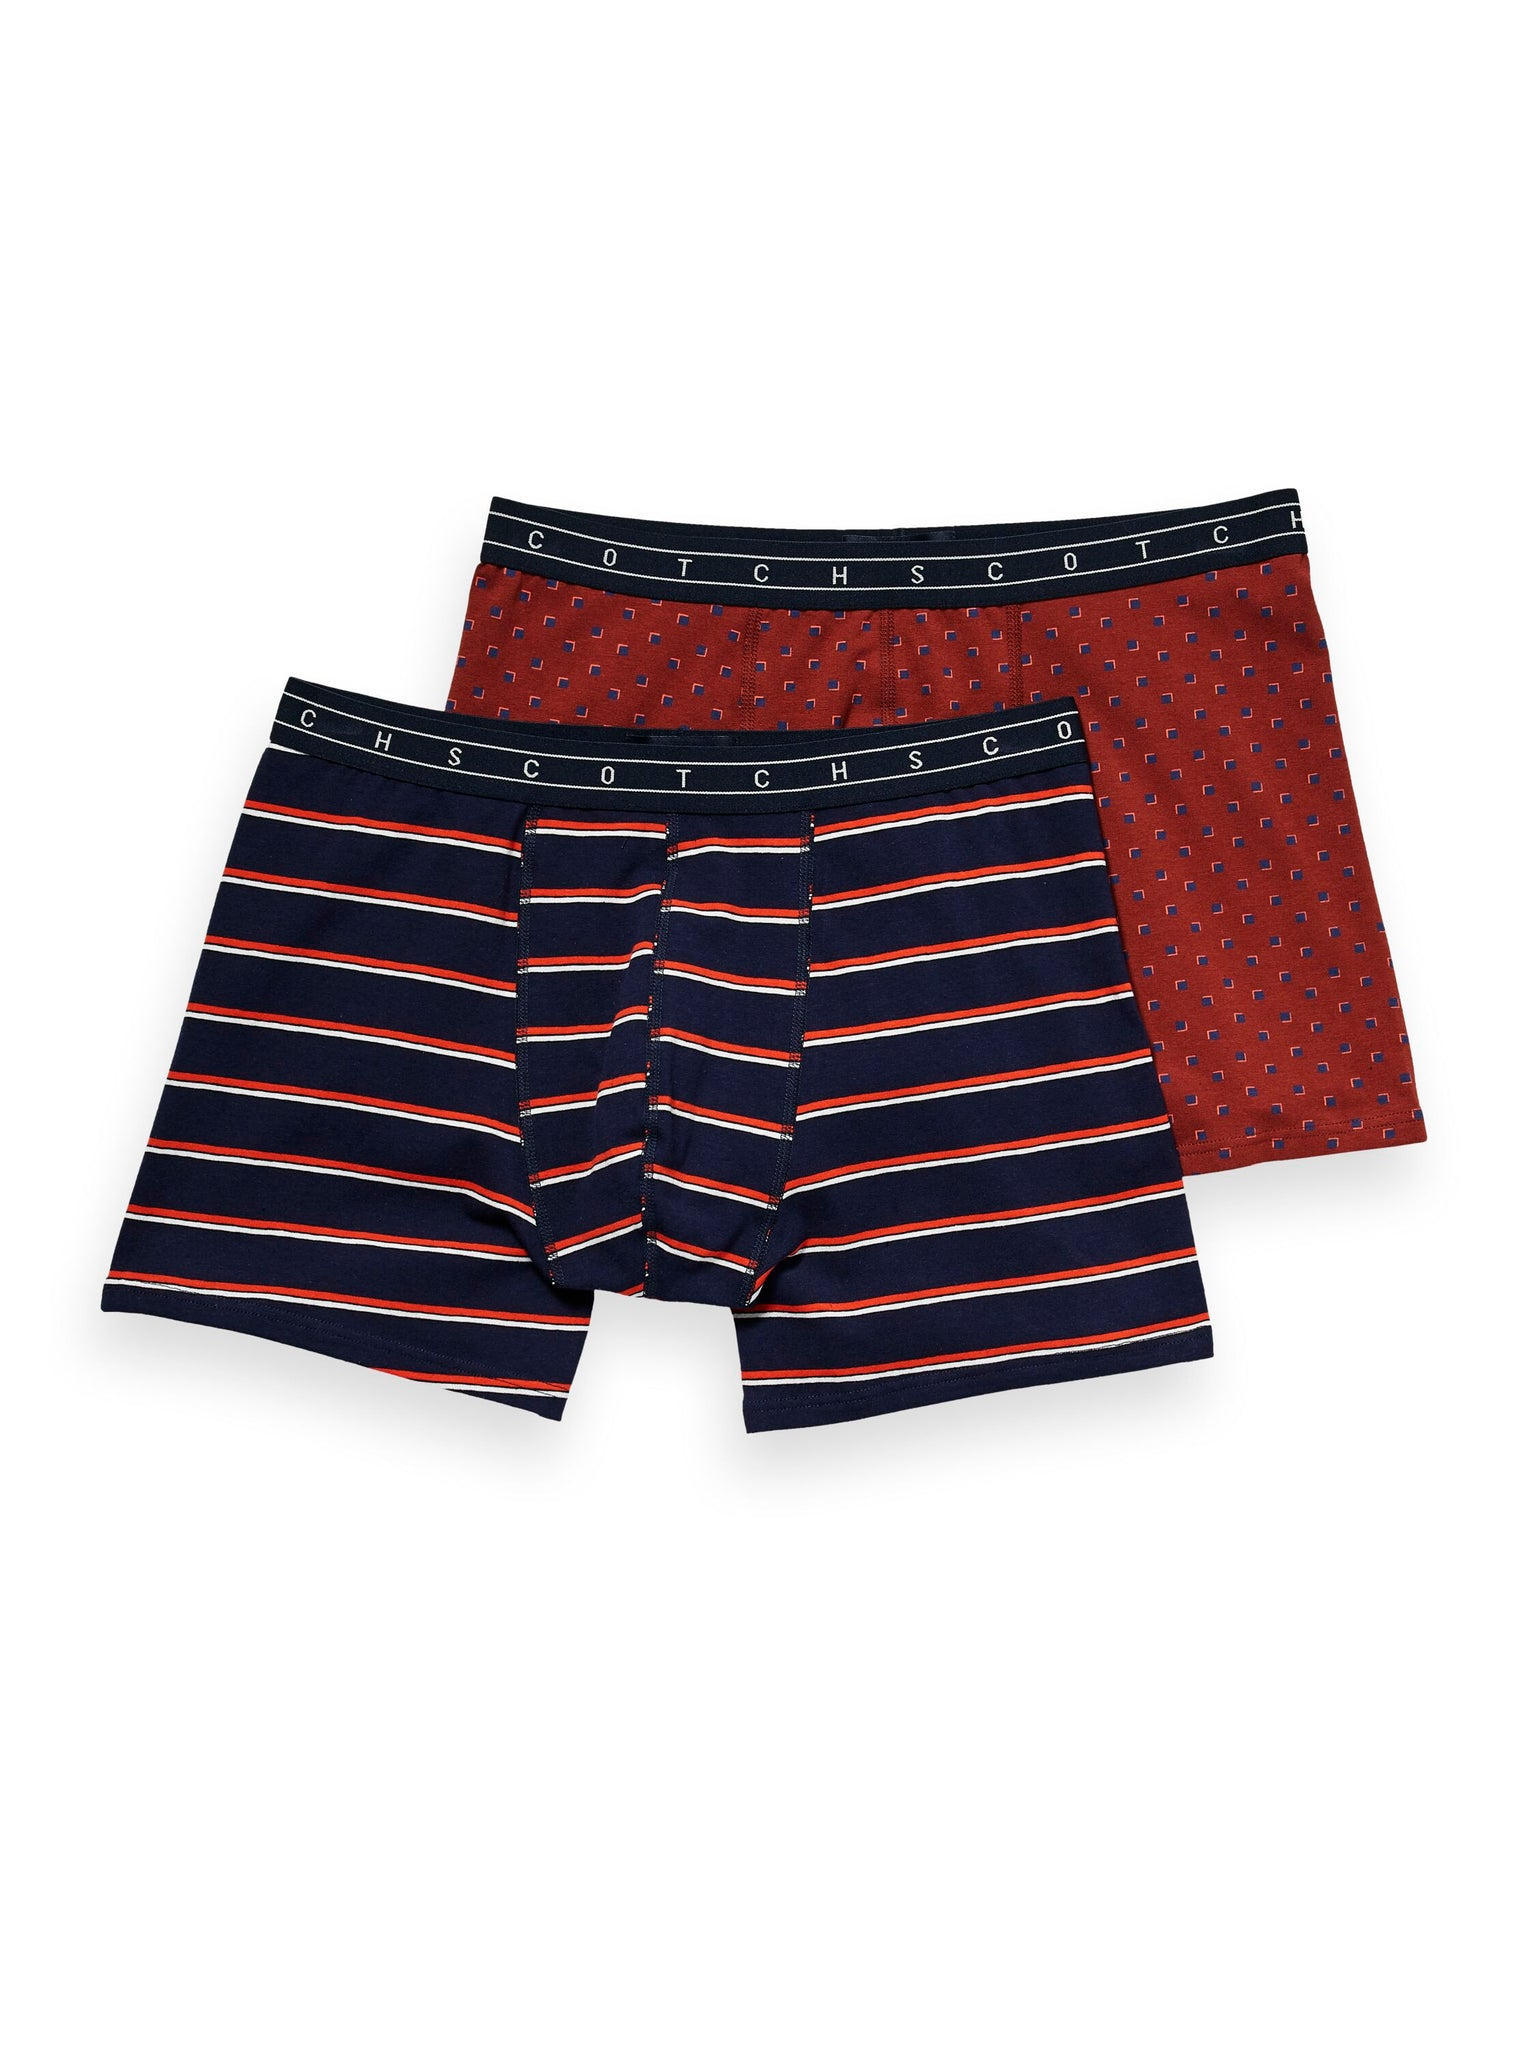 Scotch & Soda Classic Boxers 157592 Combo B Scotch & Soda - 7 clothing Cardiff